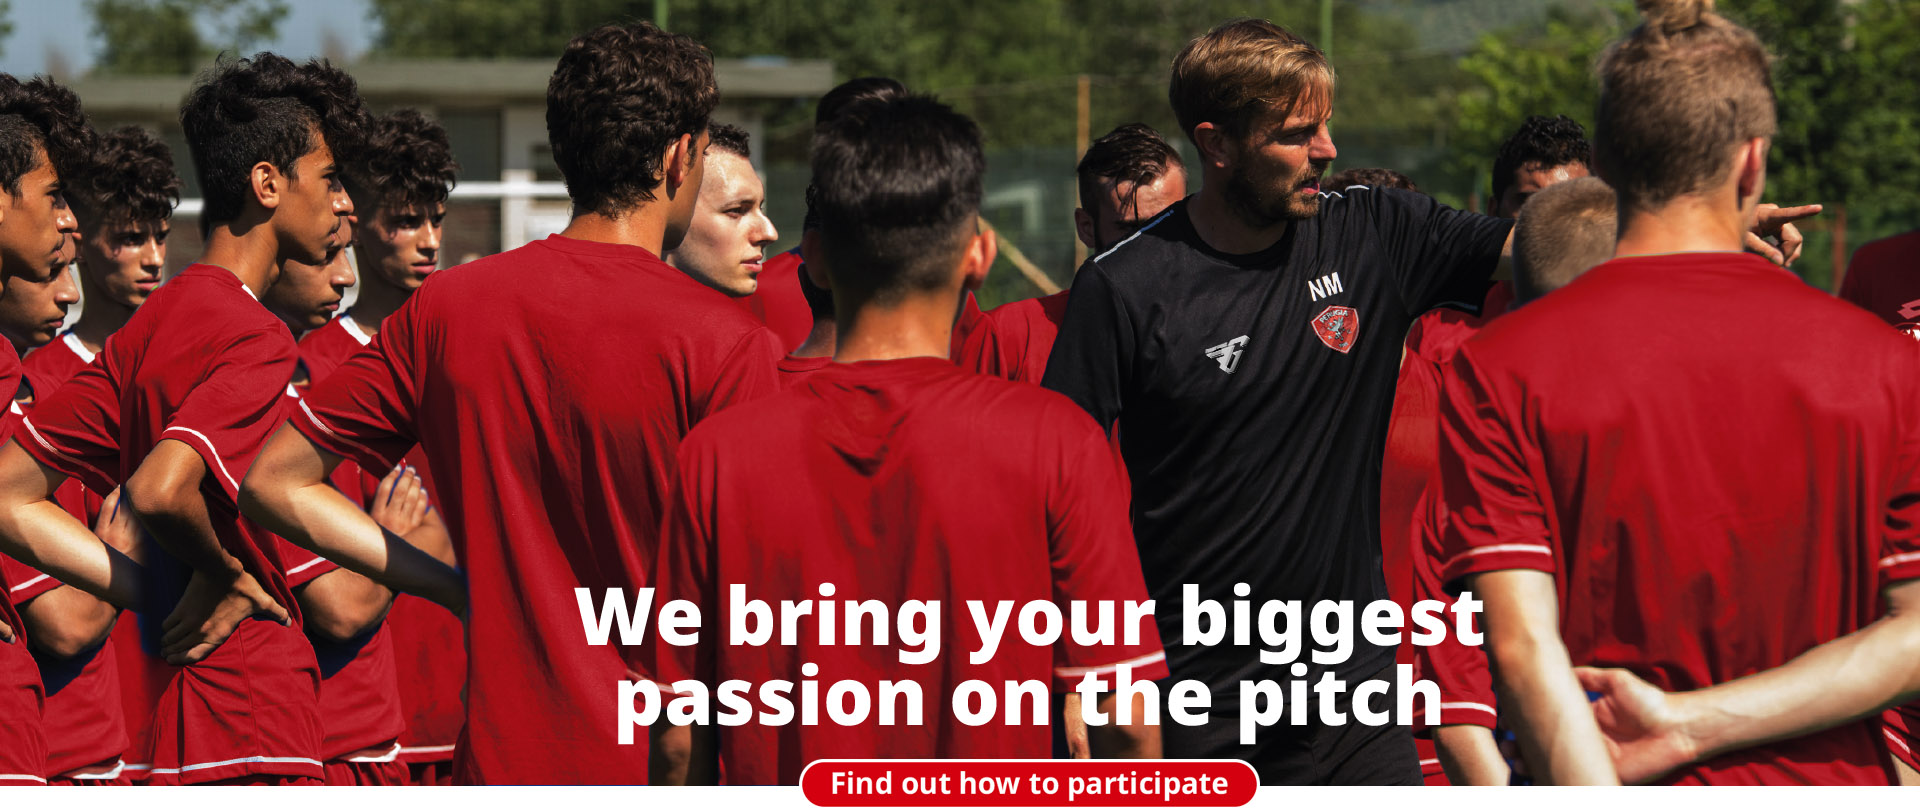 Soccer Talent Identification - Soccer Academy in Italy. Professional Soccer Tryouts in Europe, Football Tryouts in Europe, Football Tryouts in Italy, Under 18 & Under 21 Soccer Tryout in Italy - AC Perugia